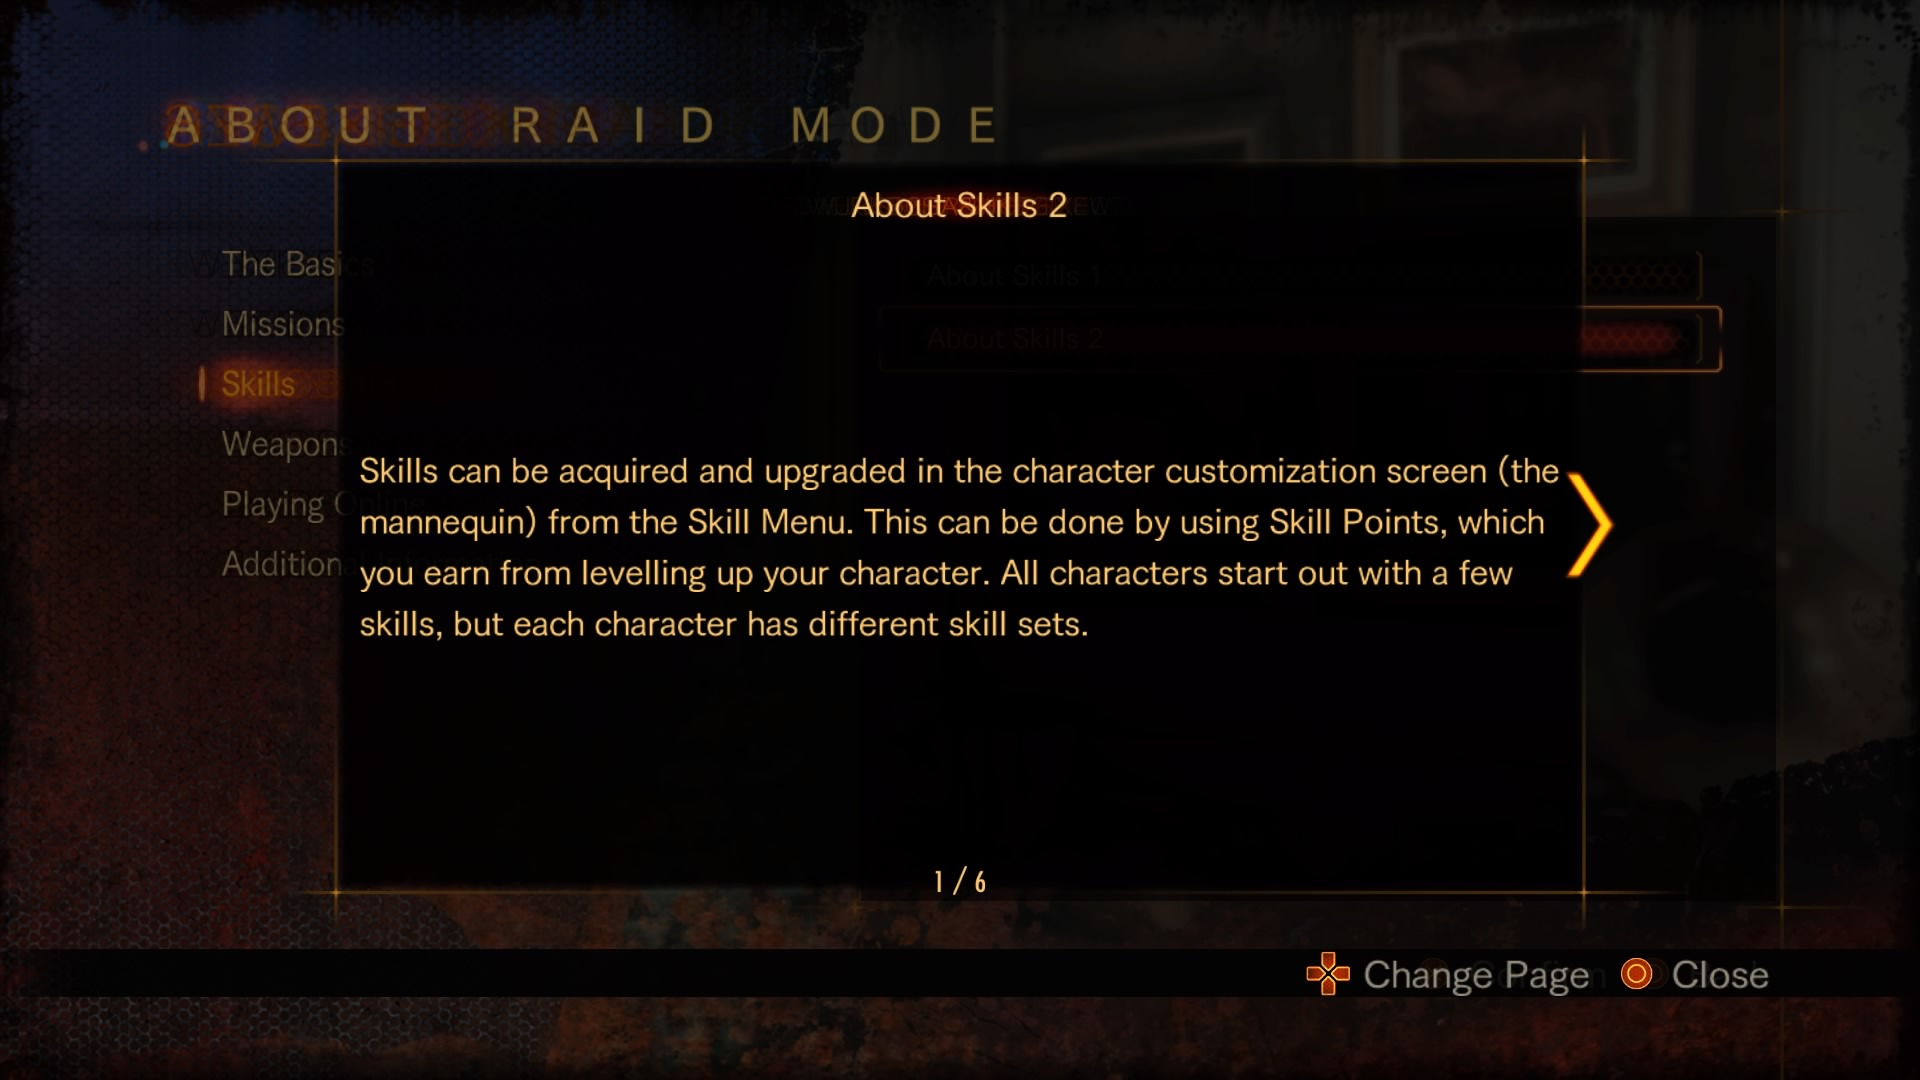 About Skills 2